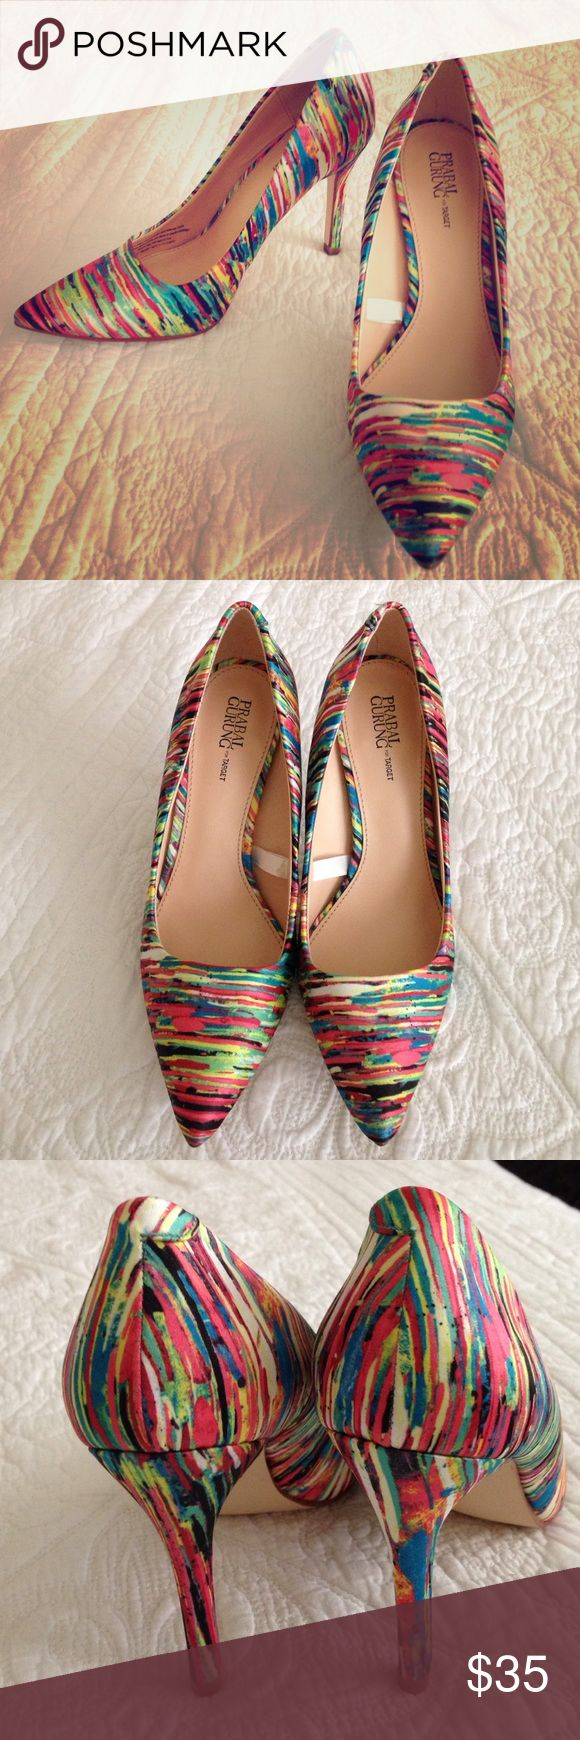 Prabal Gurung for Target heels Excellent condition! Worn once- looks absolutely brand new! A real outfit maker! Perfect with jeans or a little black dress. Prabal Gurung for Target Shoes Heels